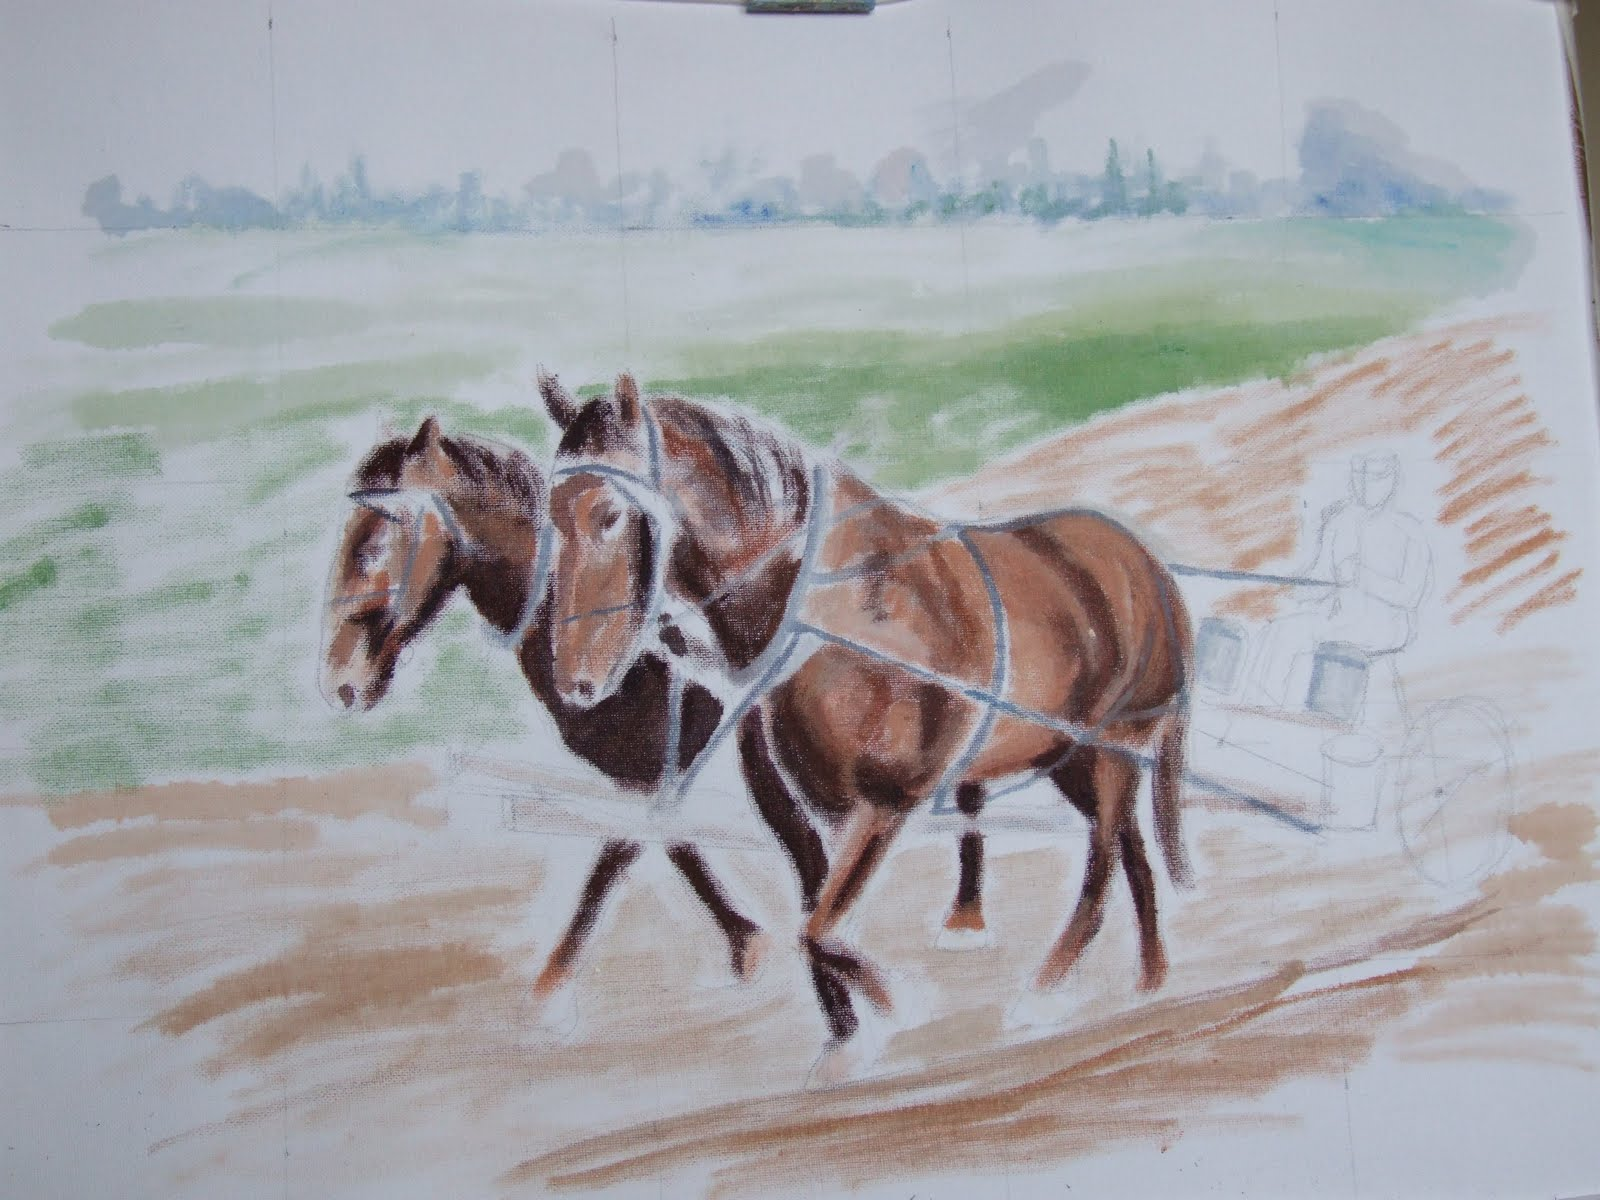 Plough horse oil painting step 4